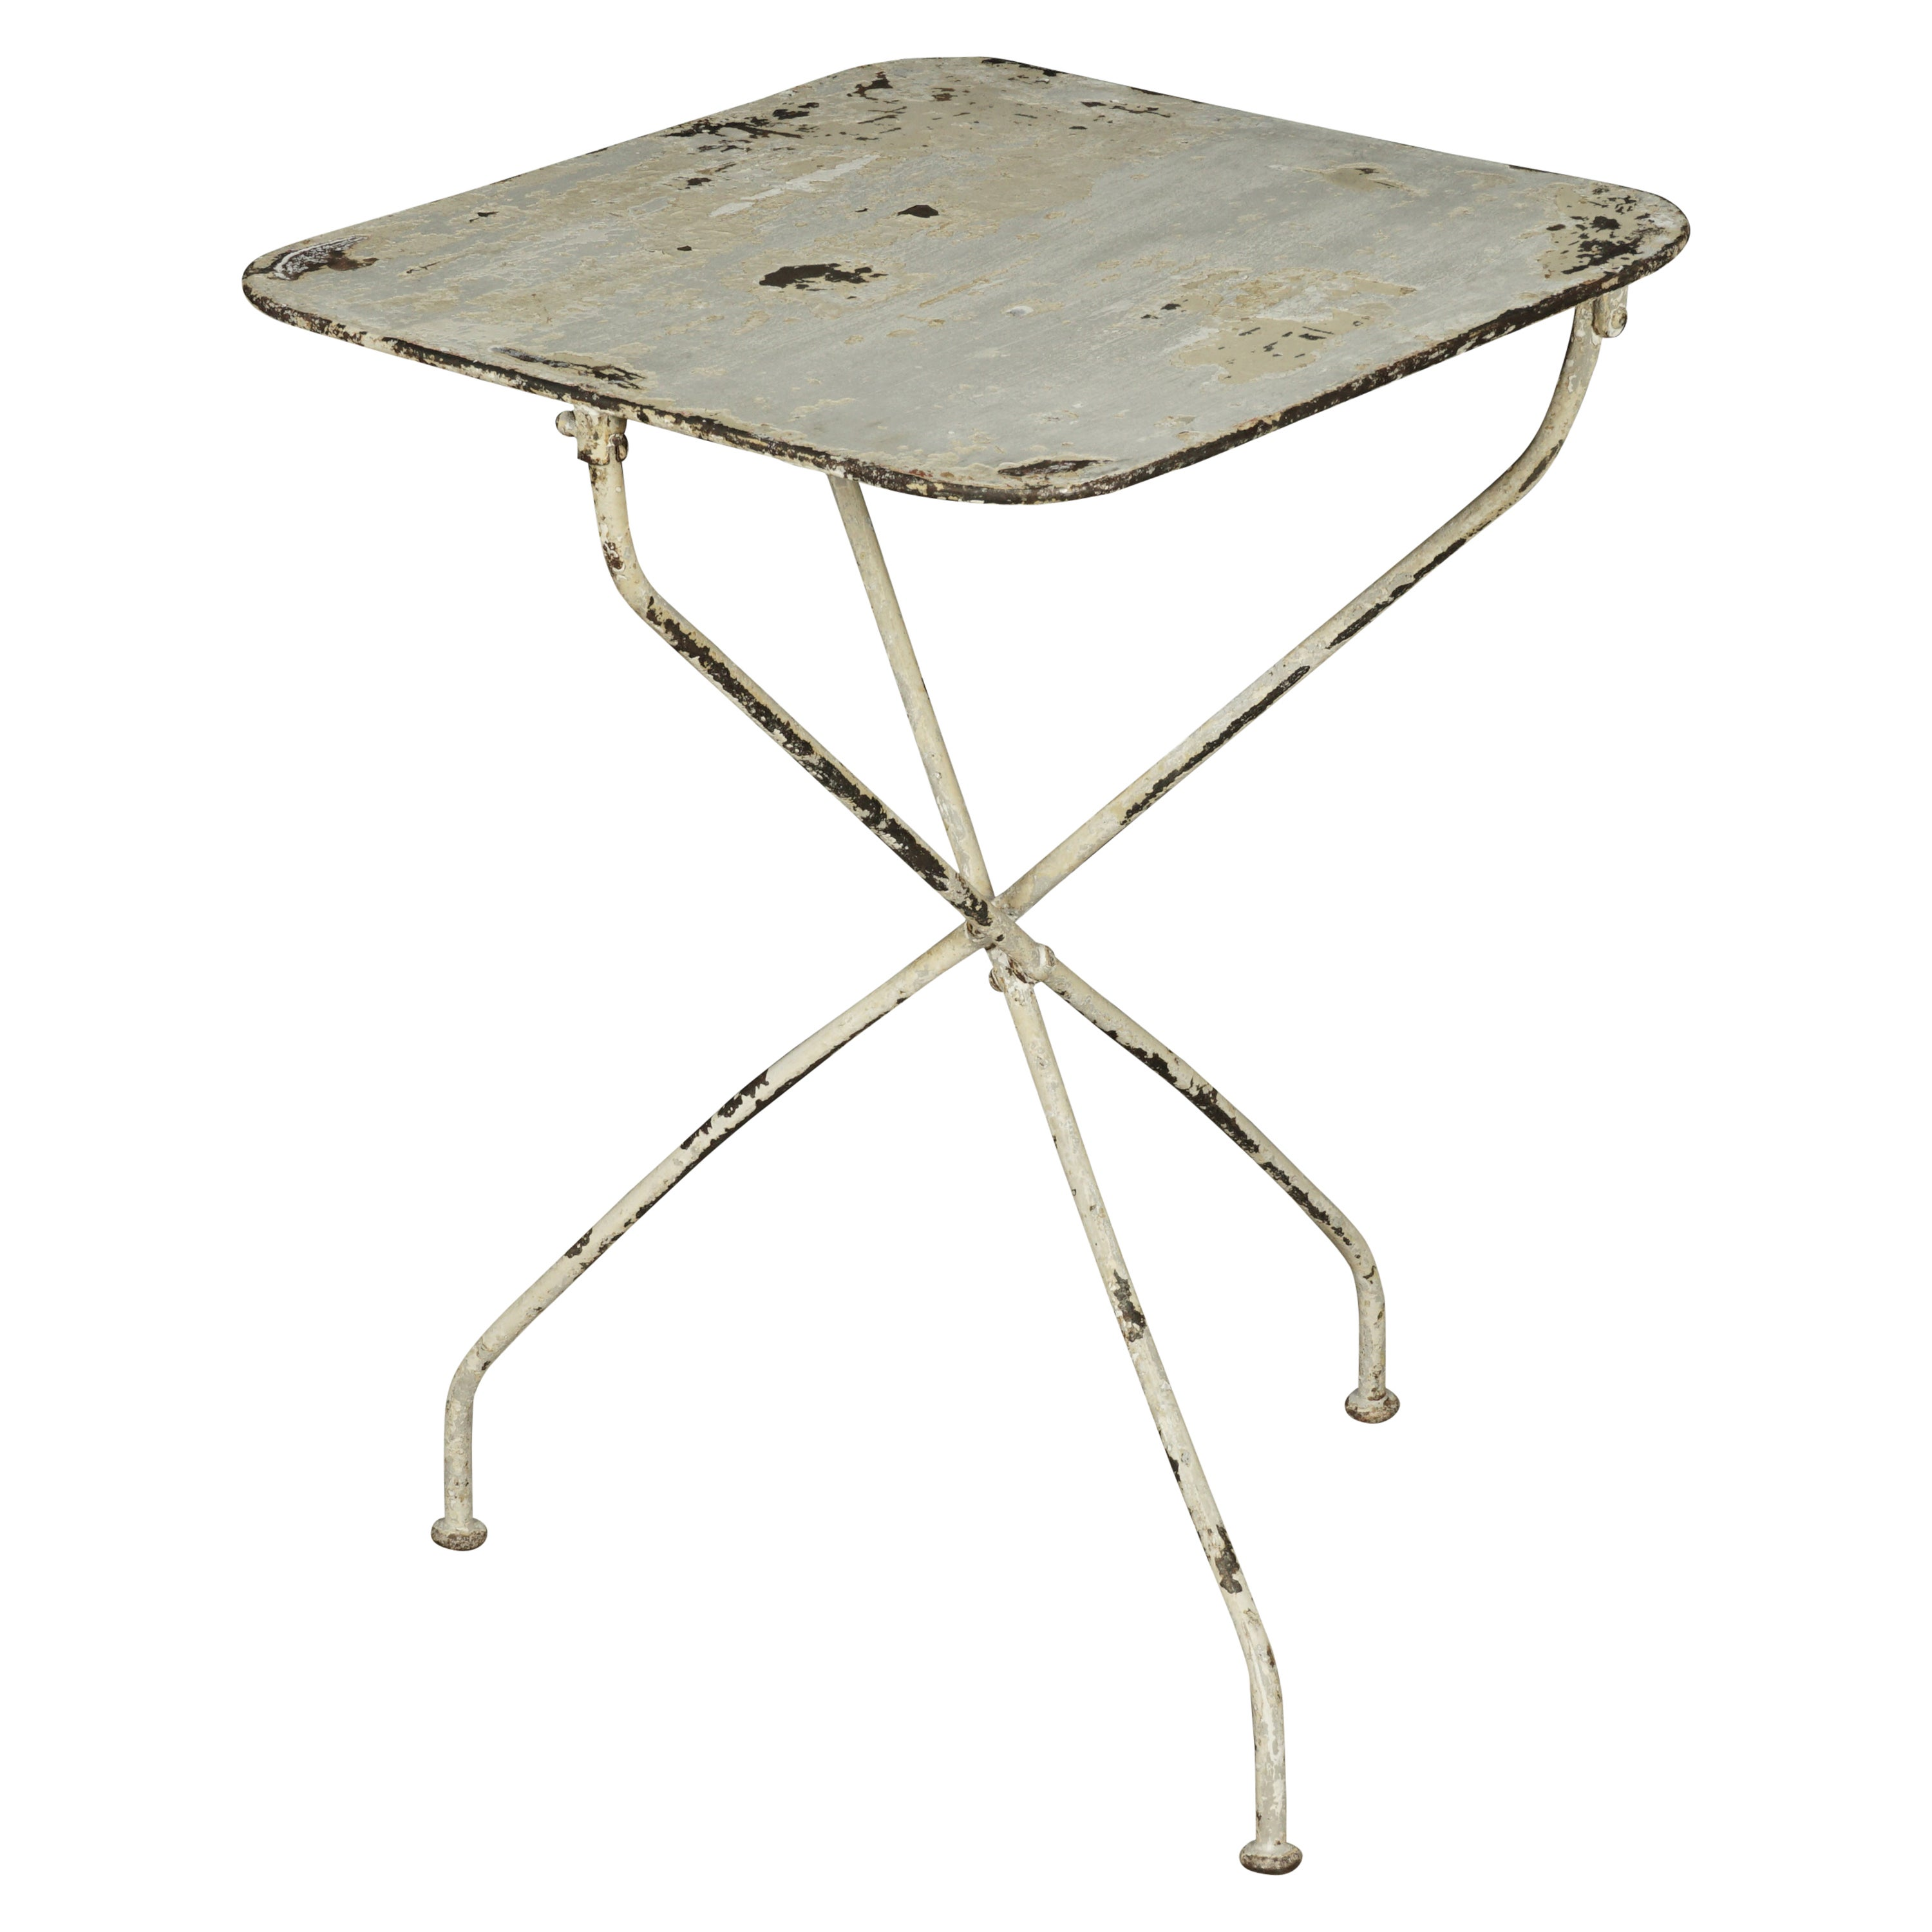 Vintage Metal Bistro Table From France, 1950s